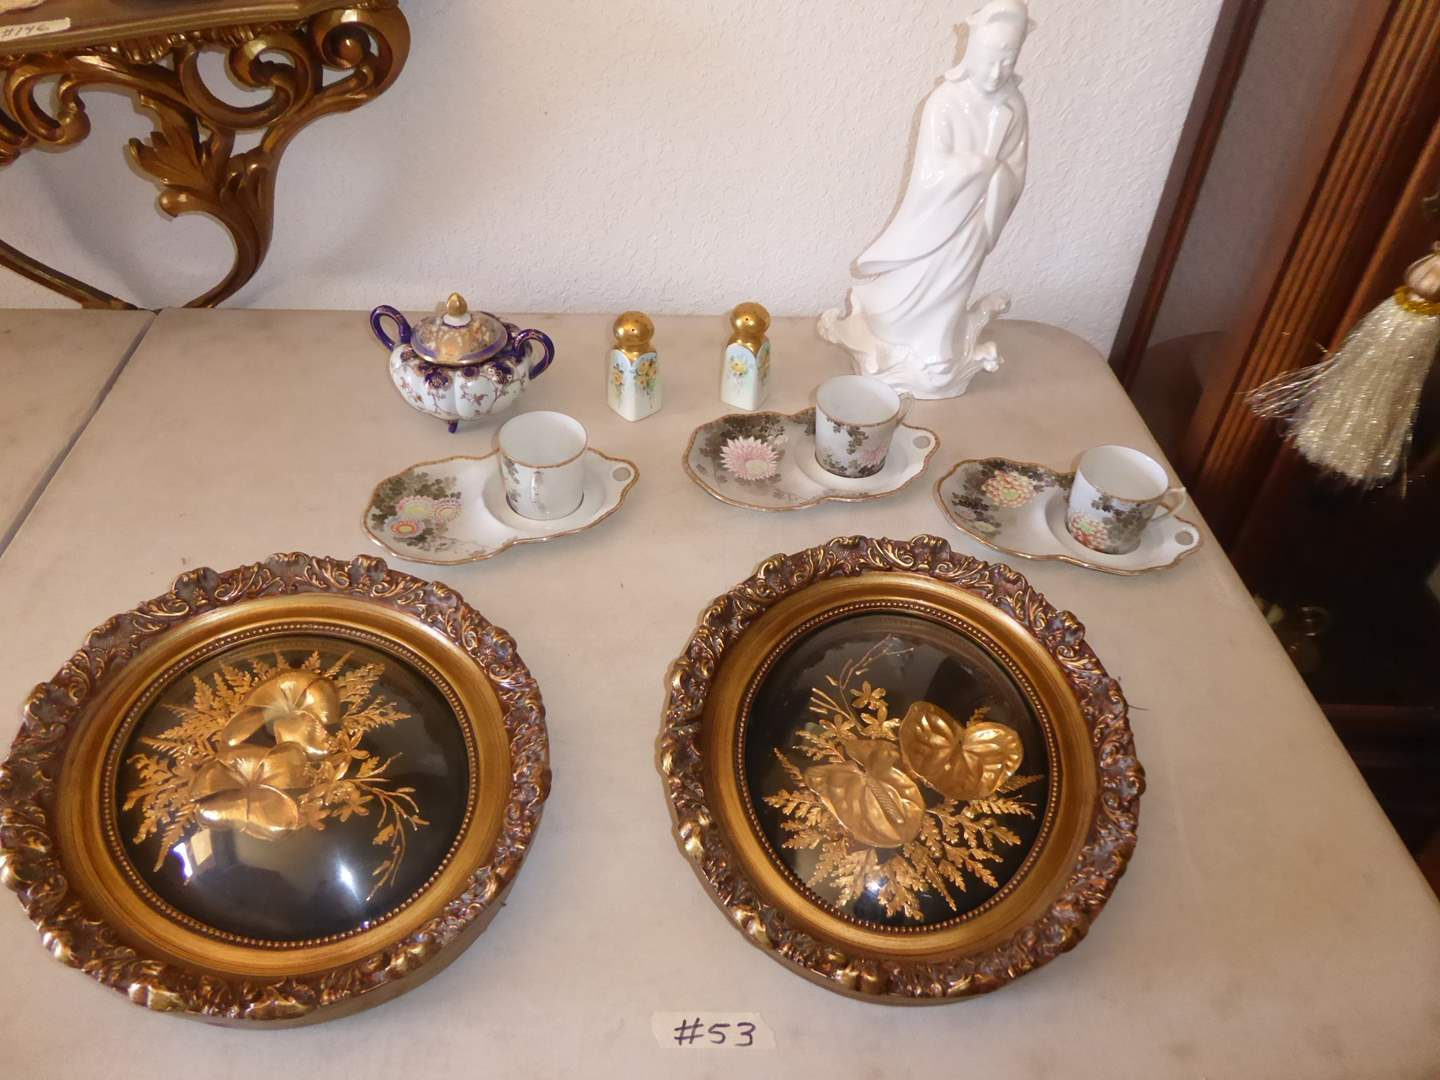 Lot # 53 - Saburo Gold Petrified Hawaiian Flowers, 3 Antique Hand Painted Kutani Tea/Snack Plates & Hand Painted Shakers   (main image)